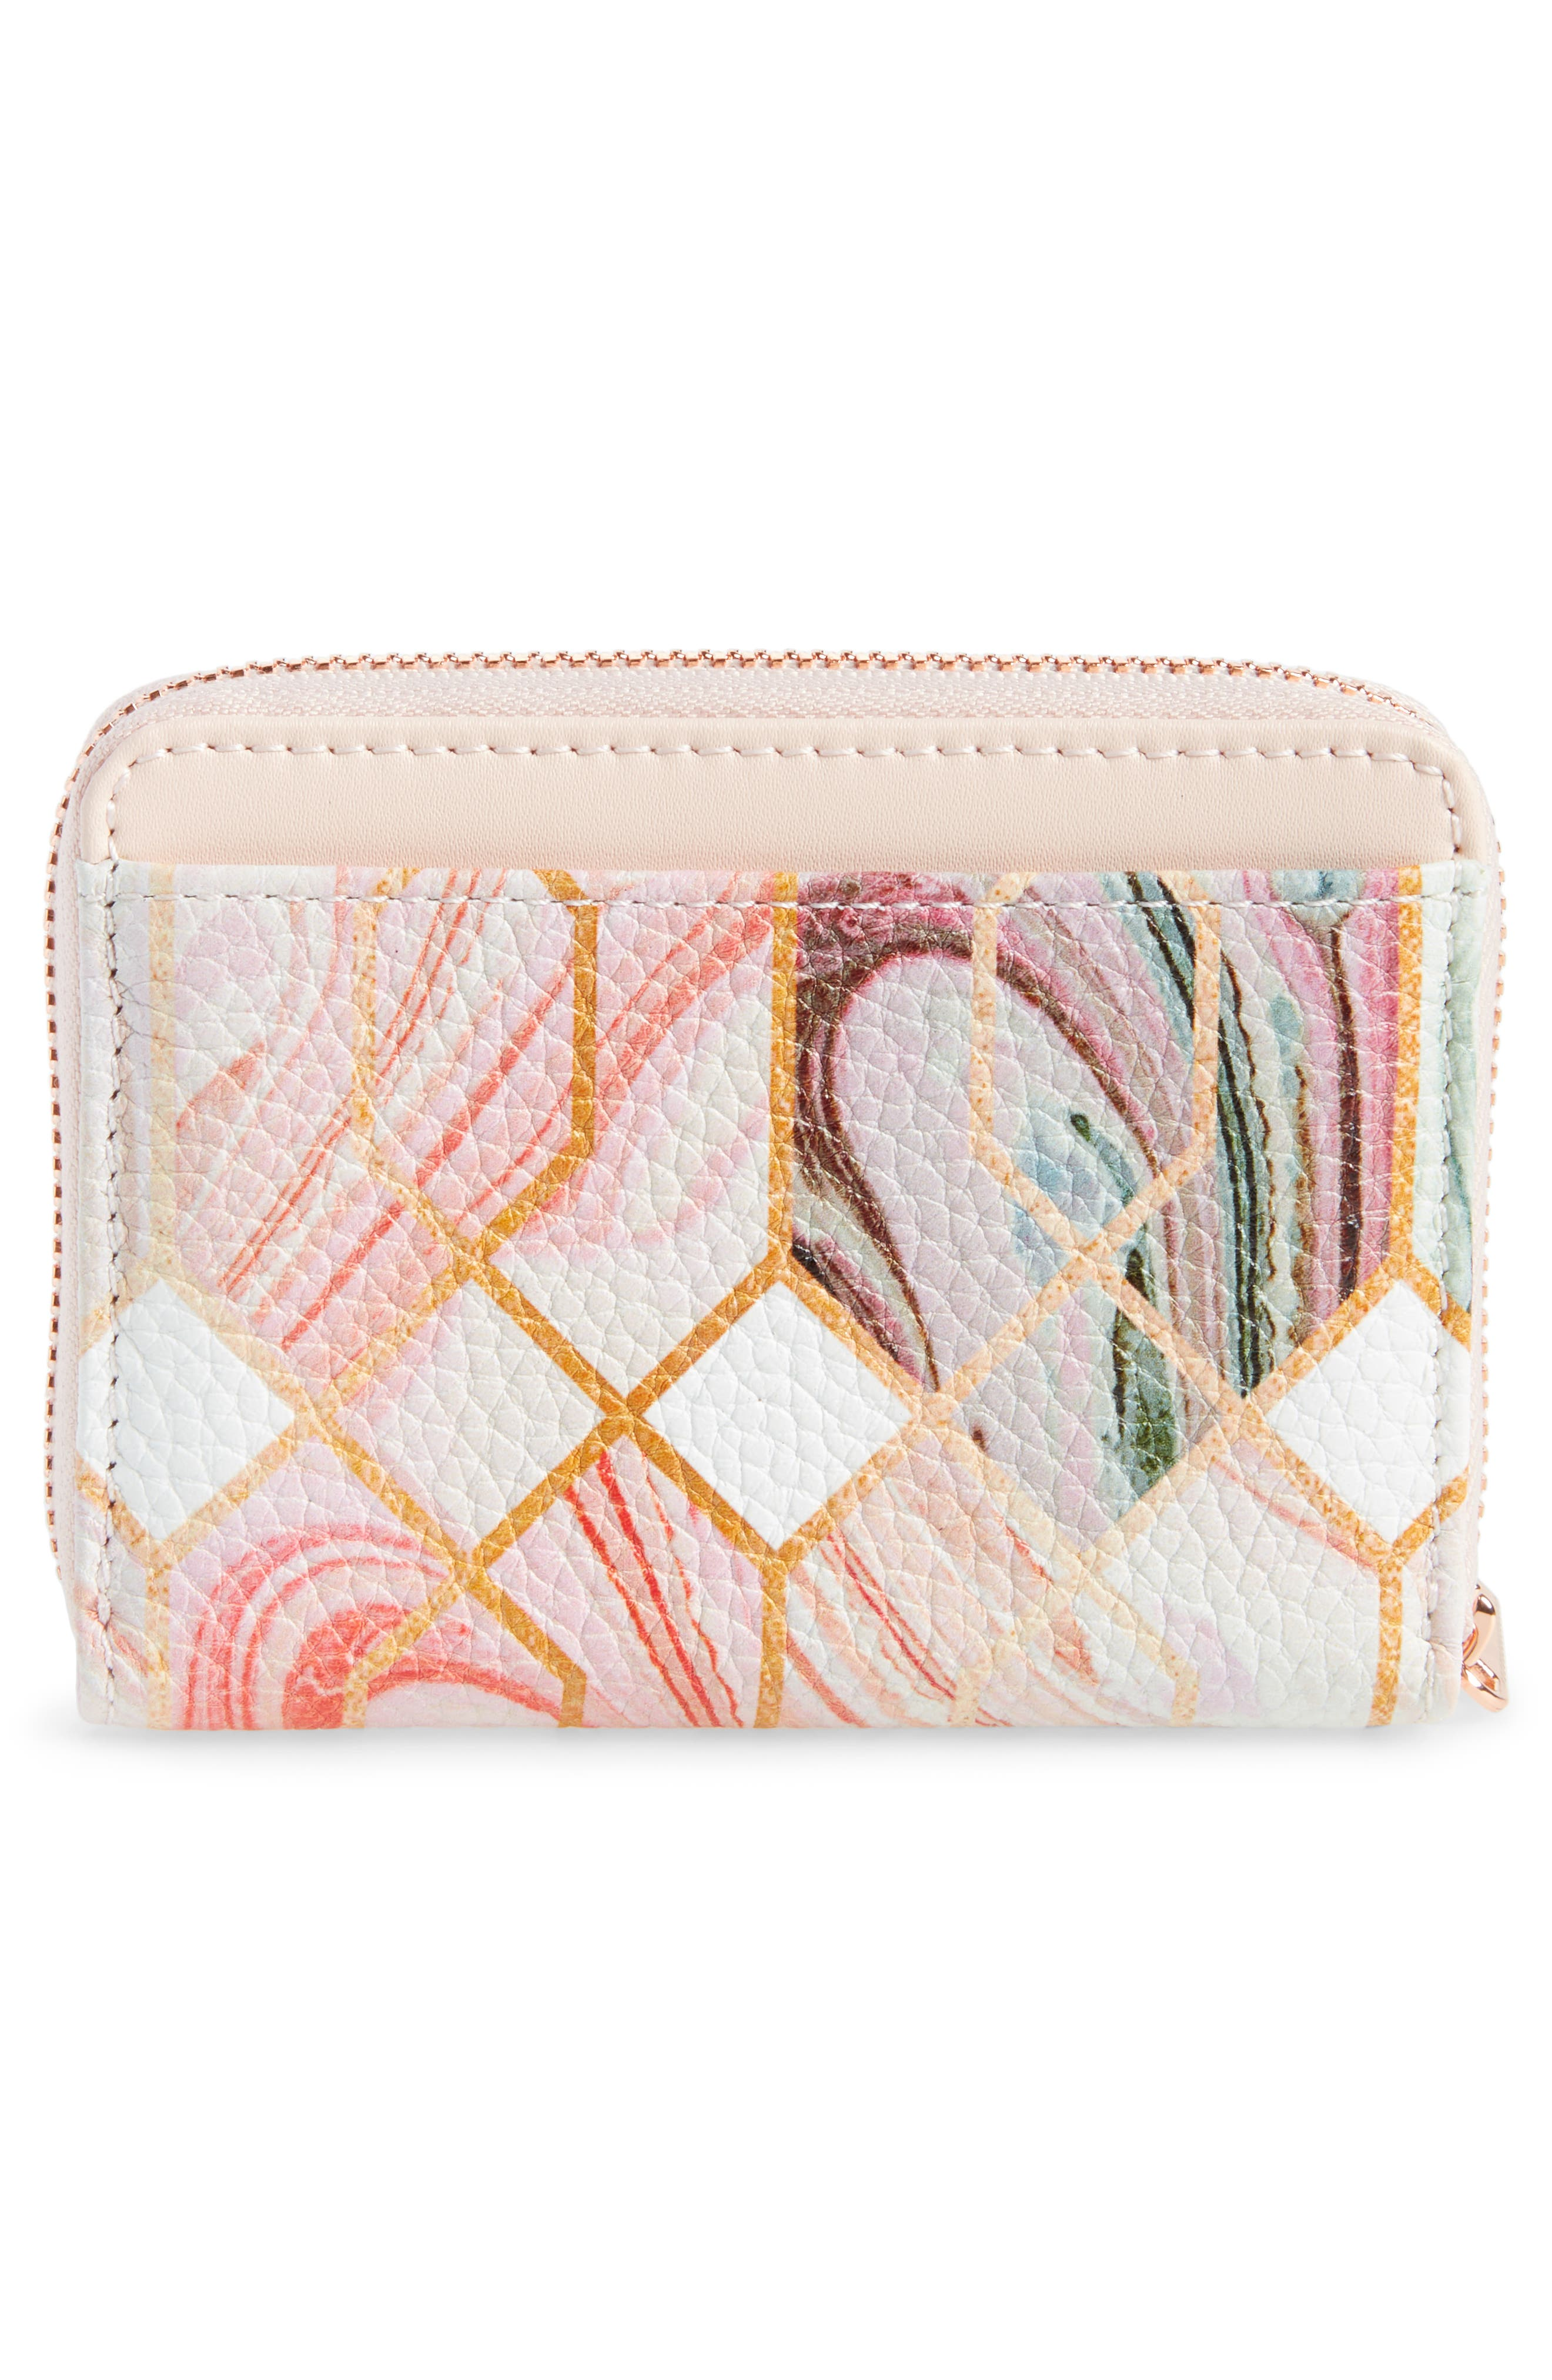 Small Sea of Clouds Coin Purse,                             Alternate thumbnail 4, color,                             White